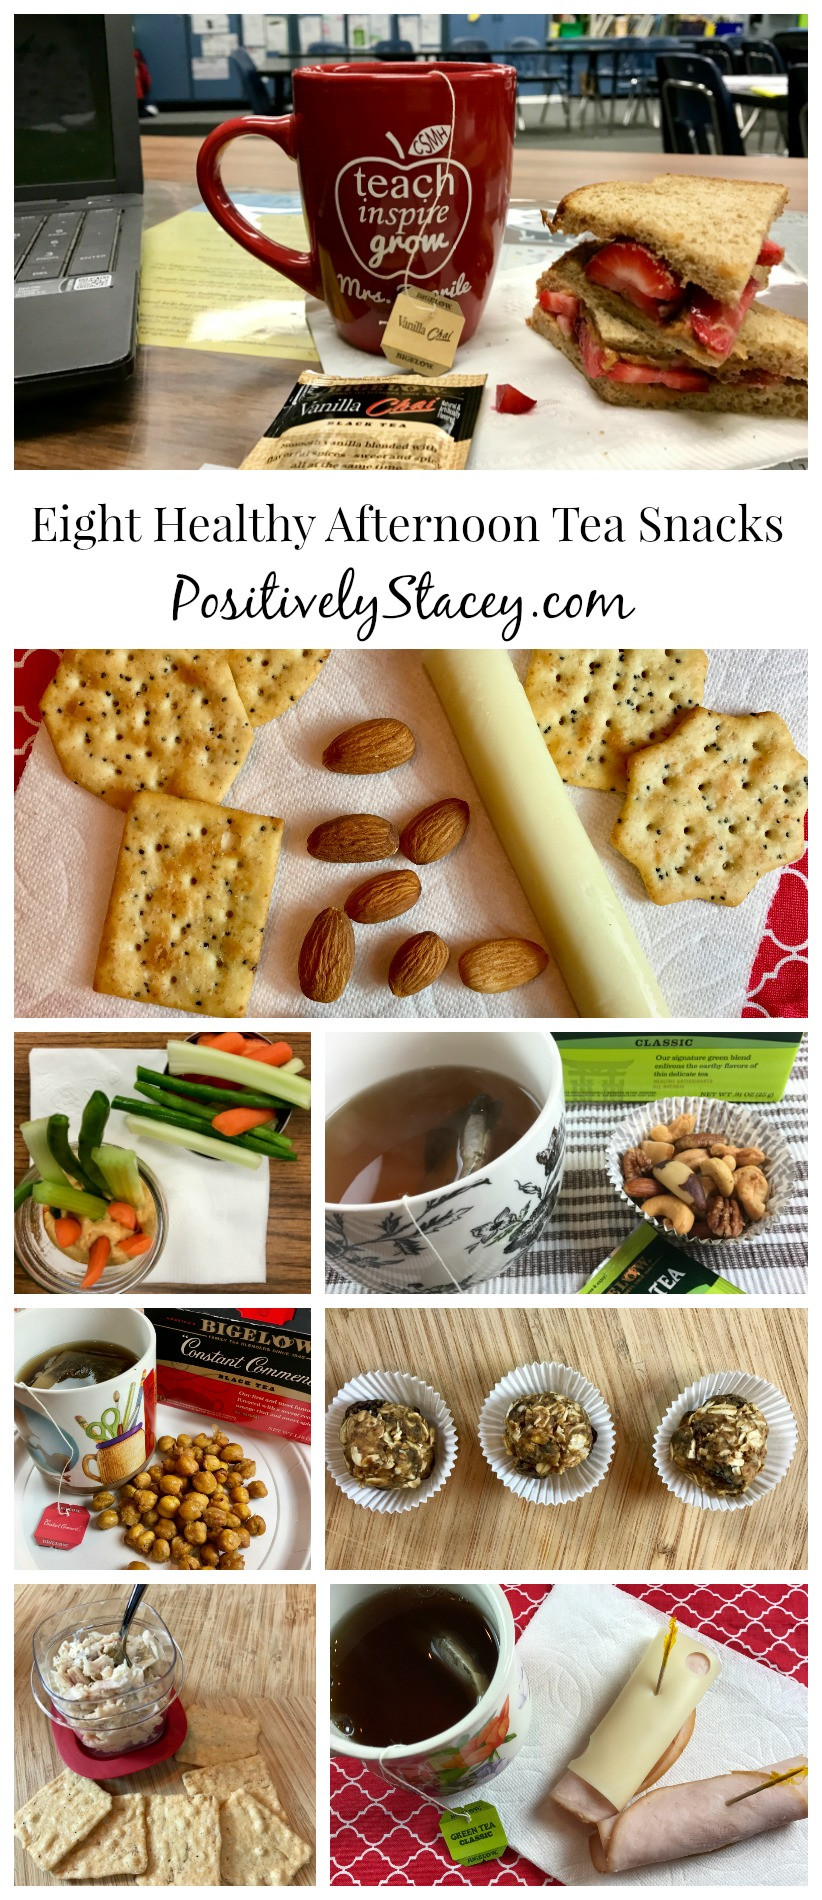 Healthy Snacks with Tea 20 Best Eight Healthy afternoon Tea Snacks Positively Stacey